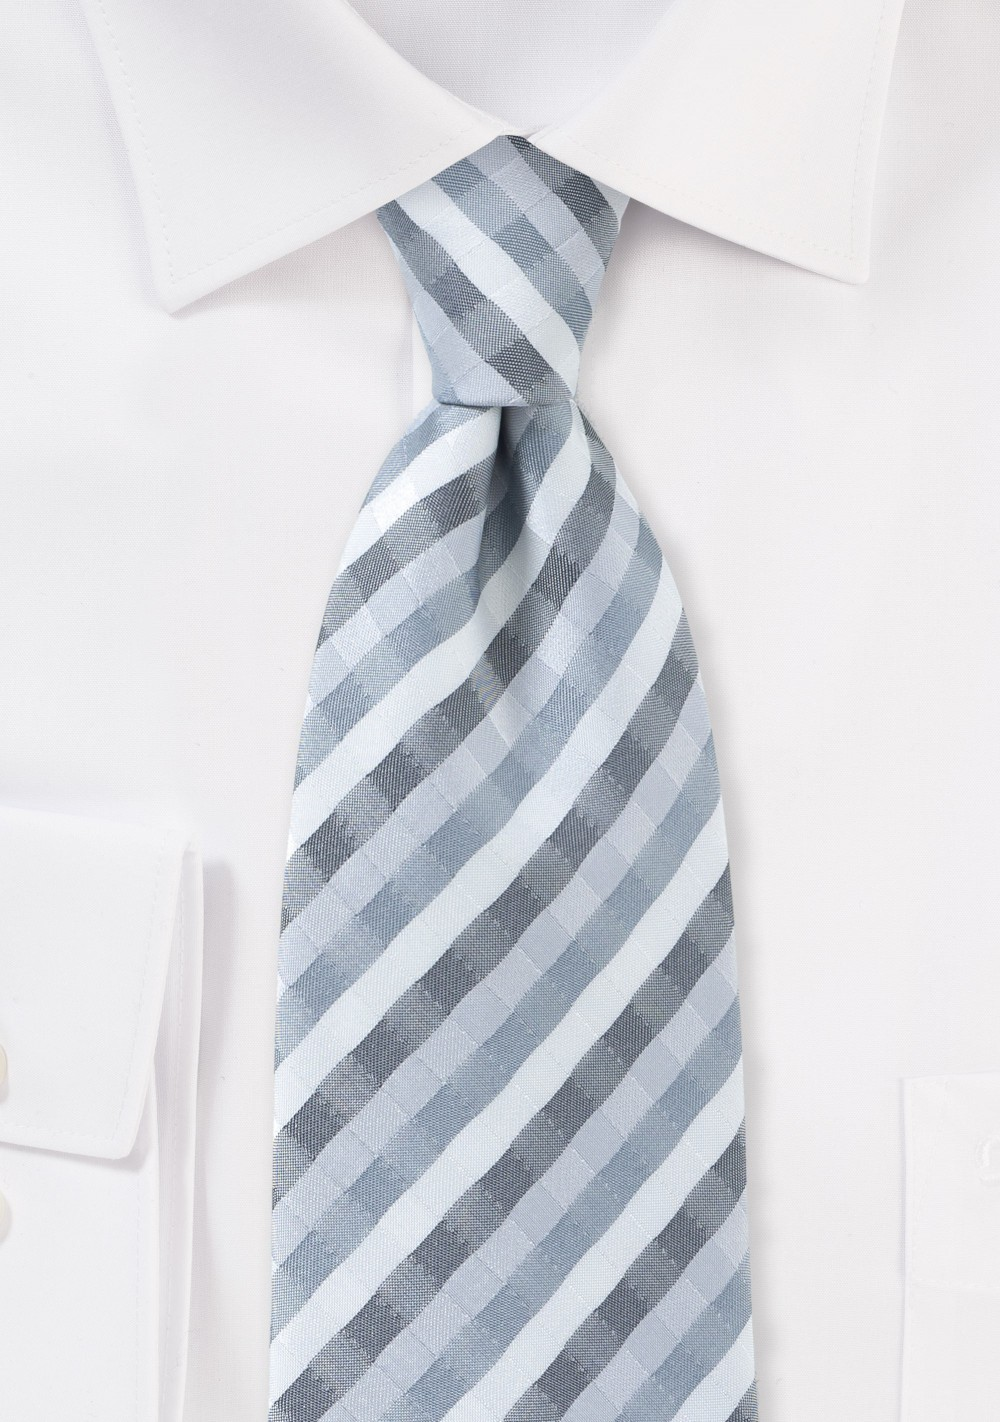 Modern Tie in Greys and Silver